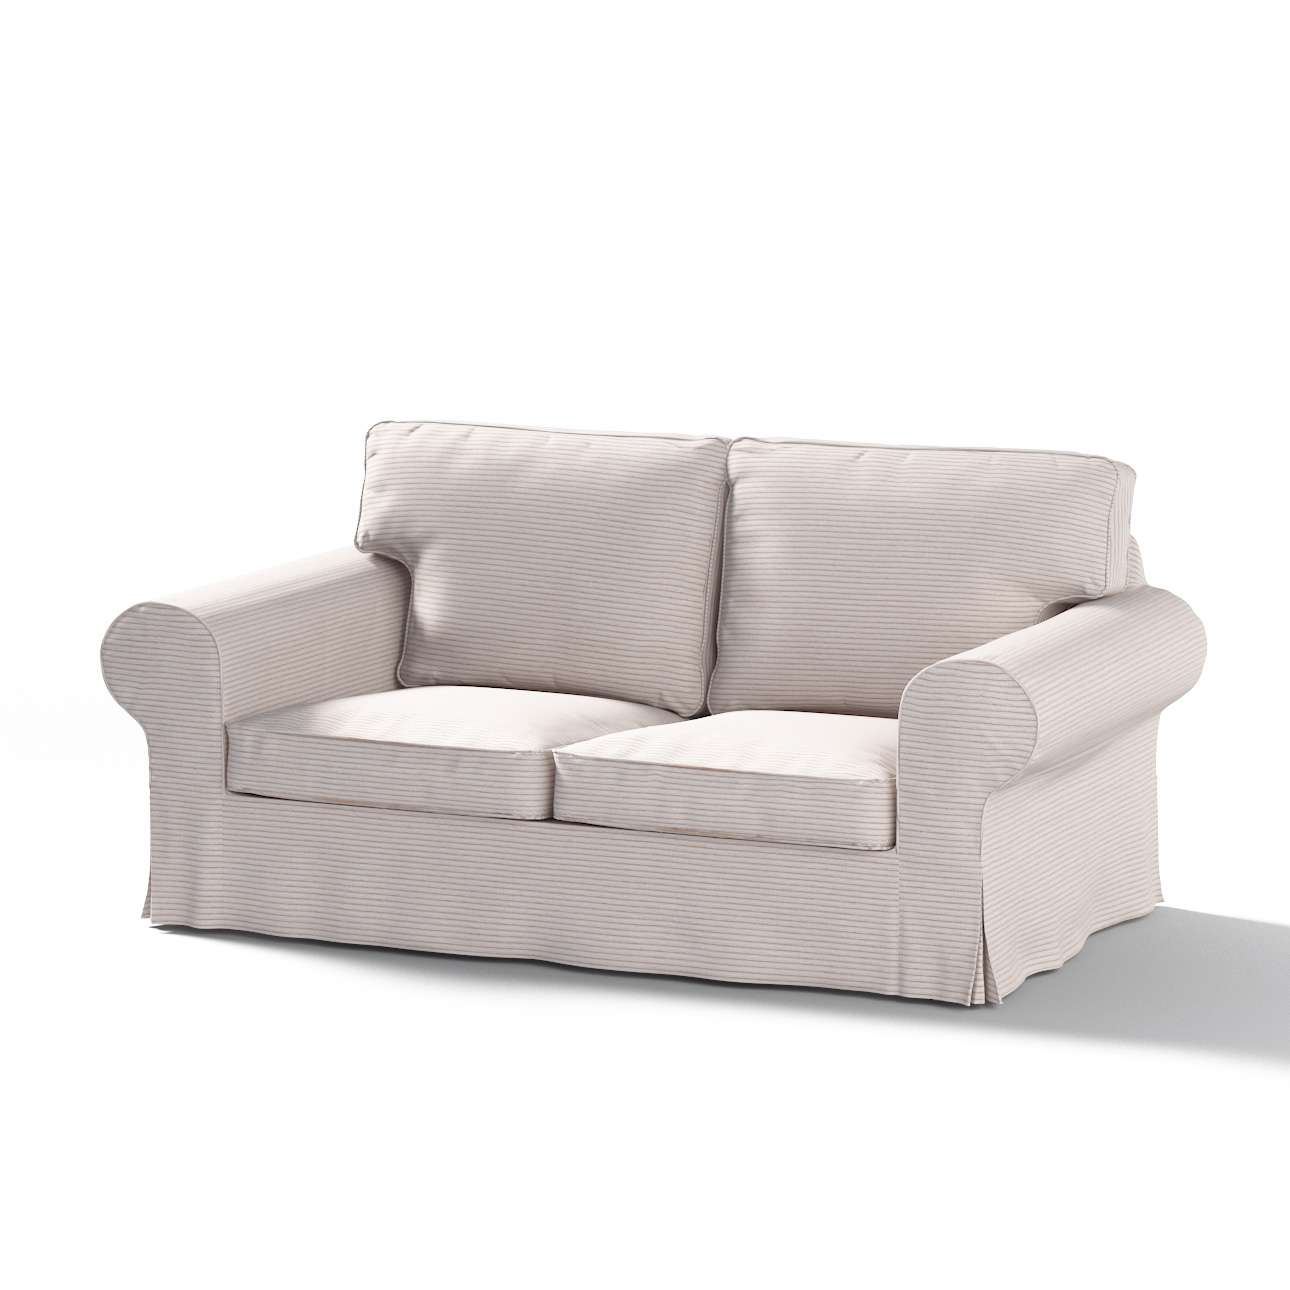 2 Seater Ikea Sofa Cover Ektorp 2 Seater Sofa Cover